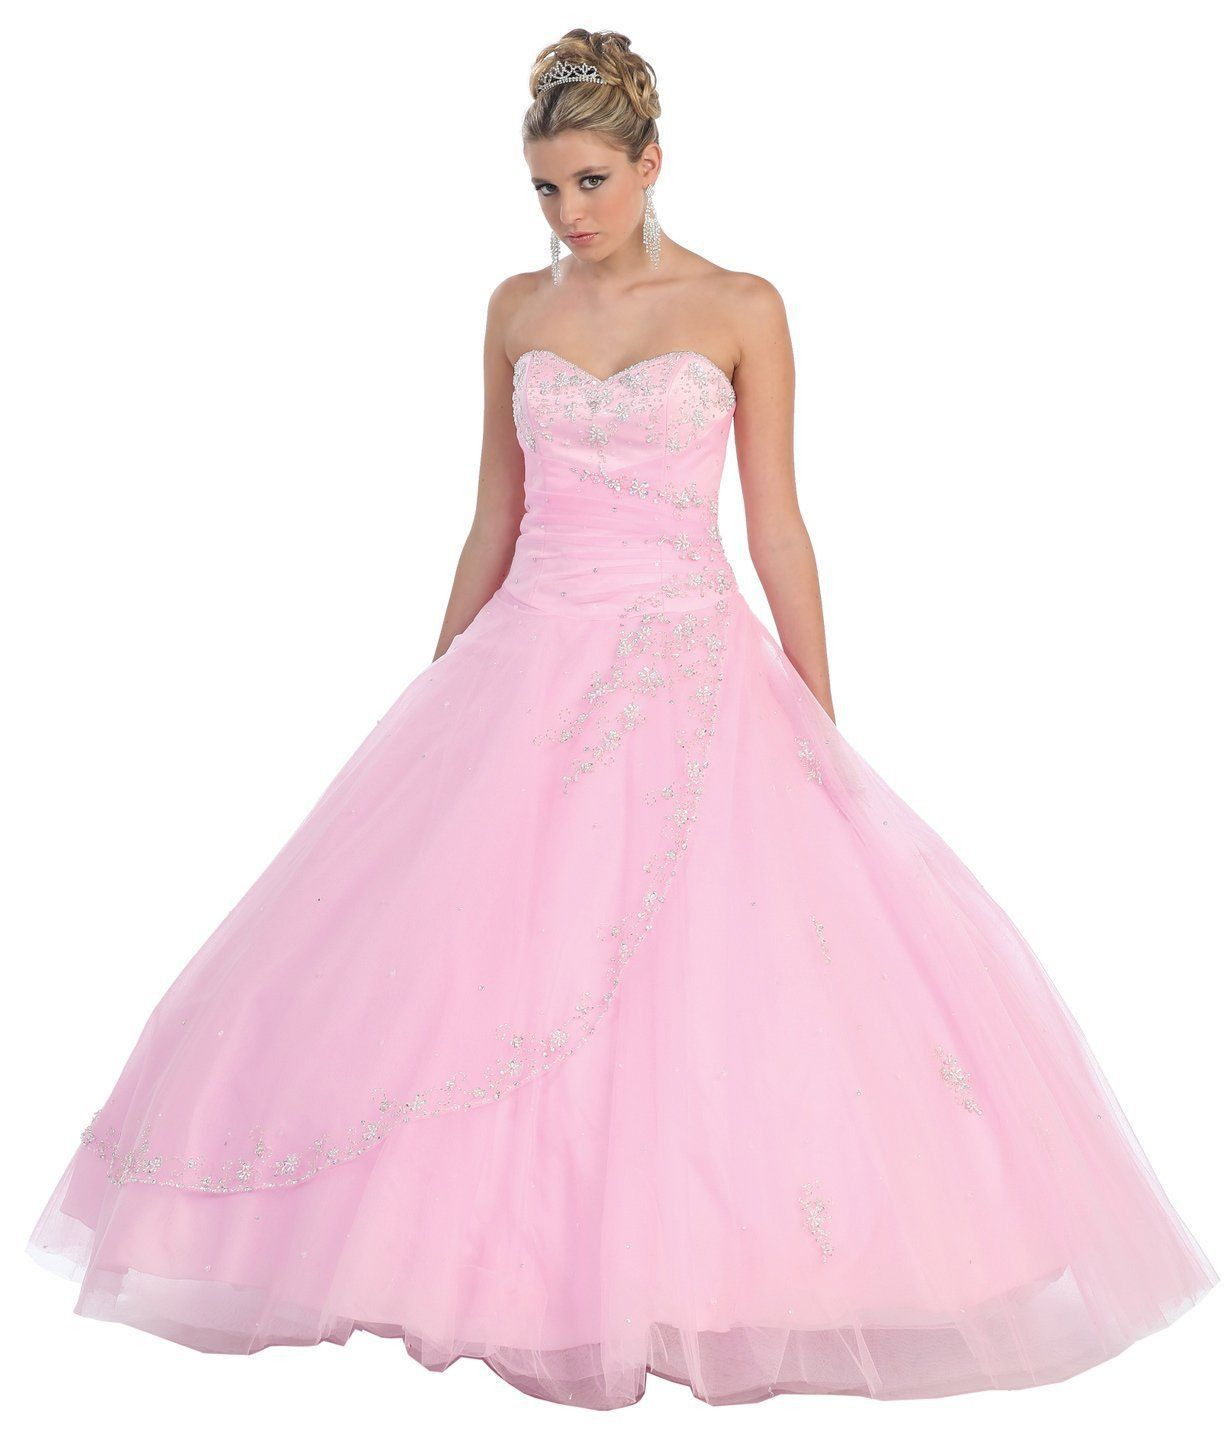 Quinceanera Strapless Tulle Prom Long Ball Gown Dress - The Dress ...